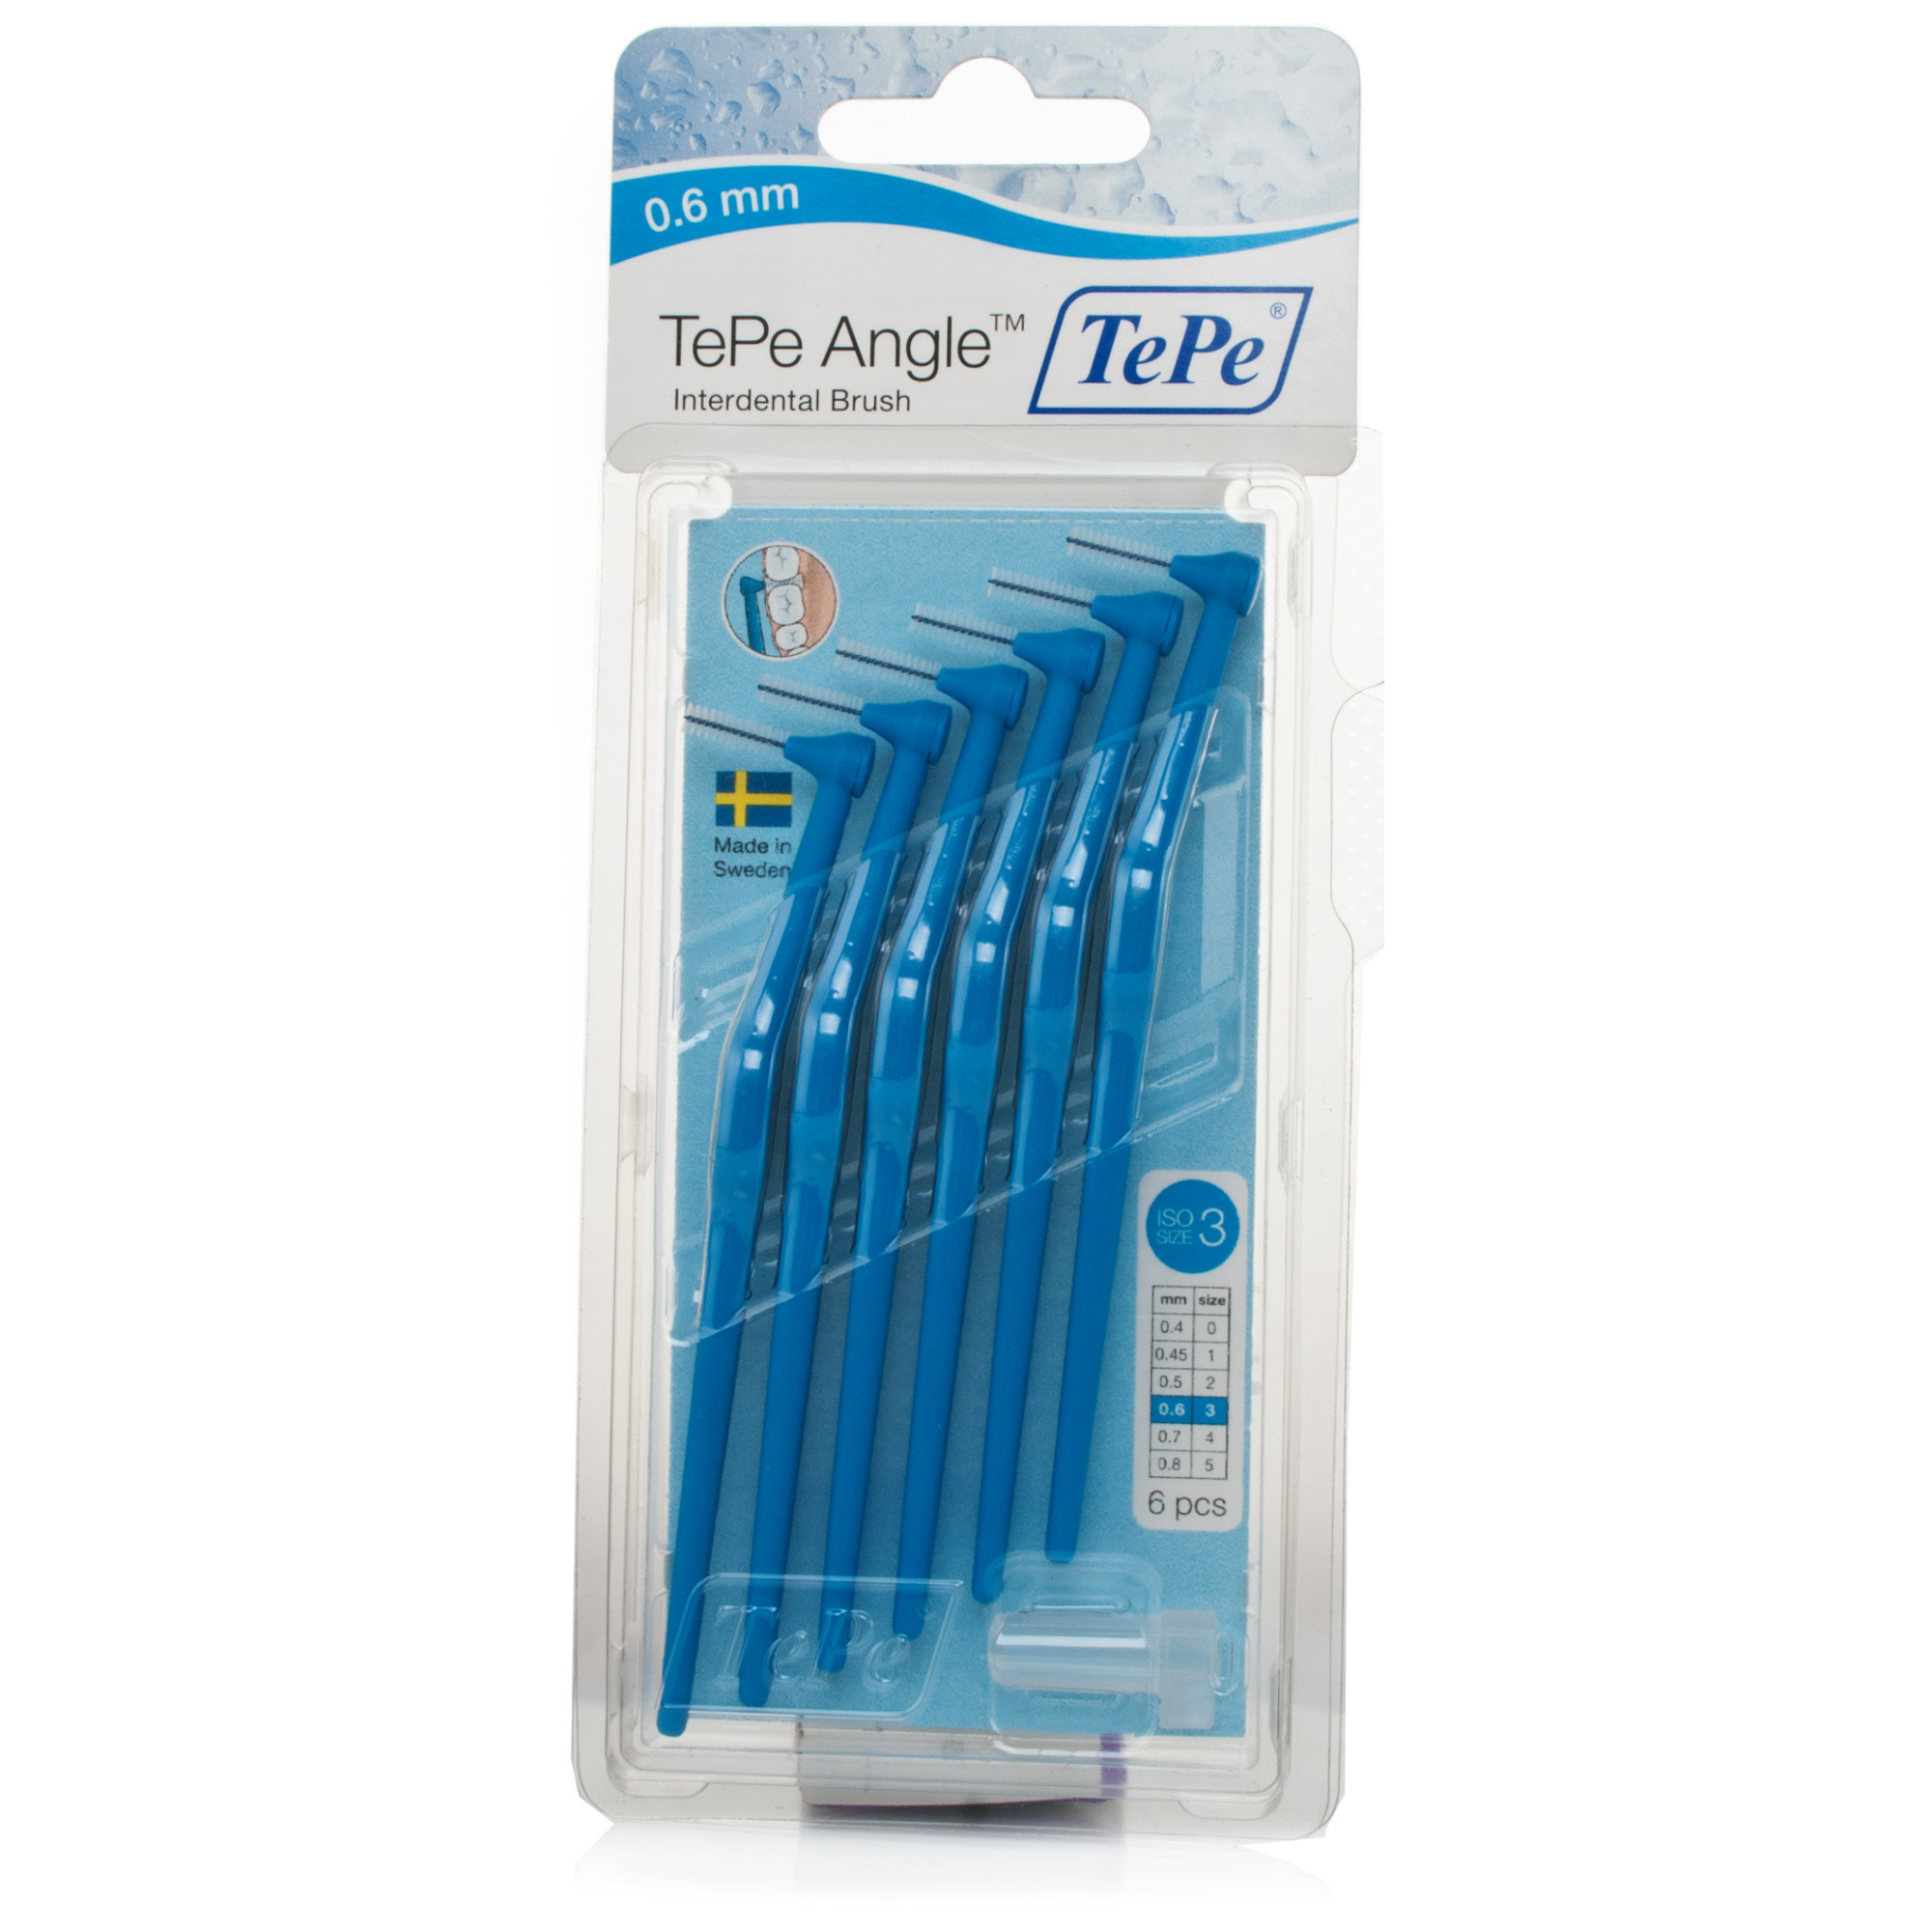 TePe Angle Interdental Brush Blue